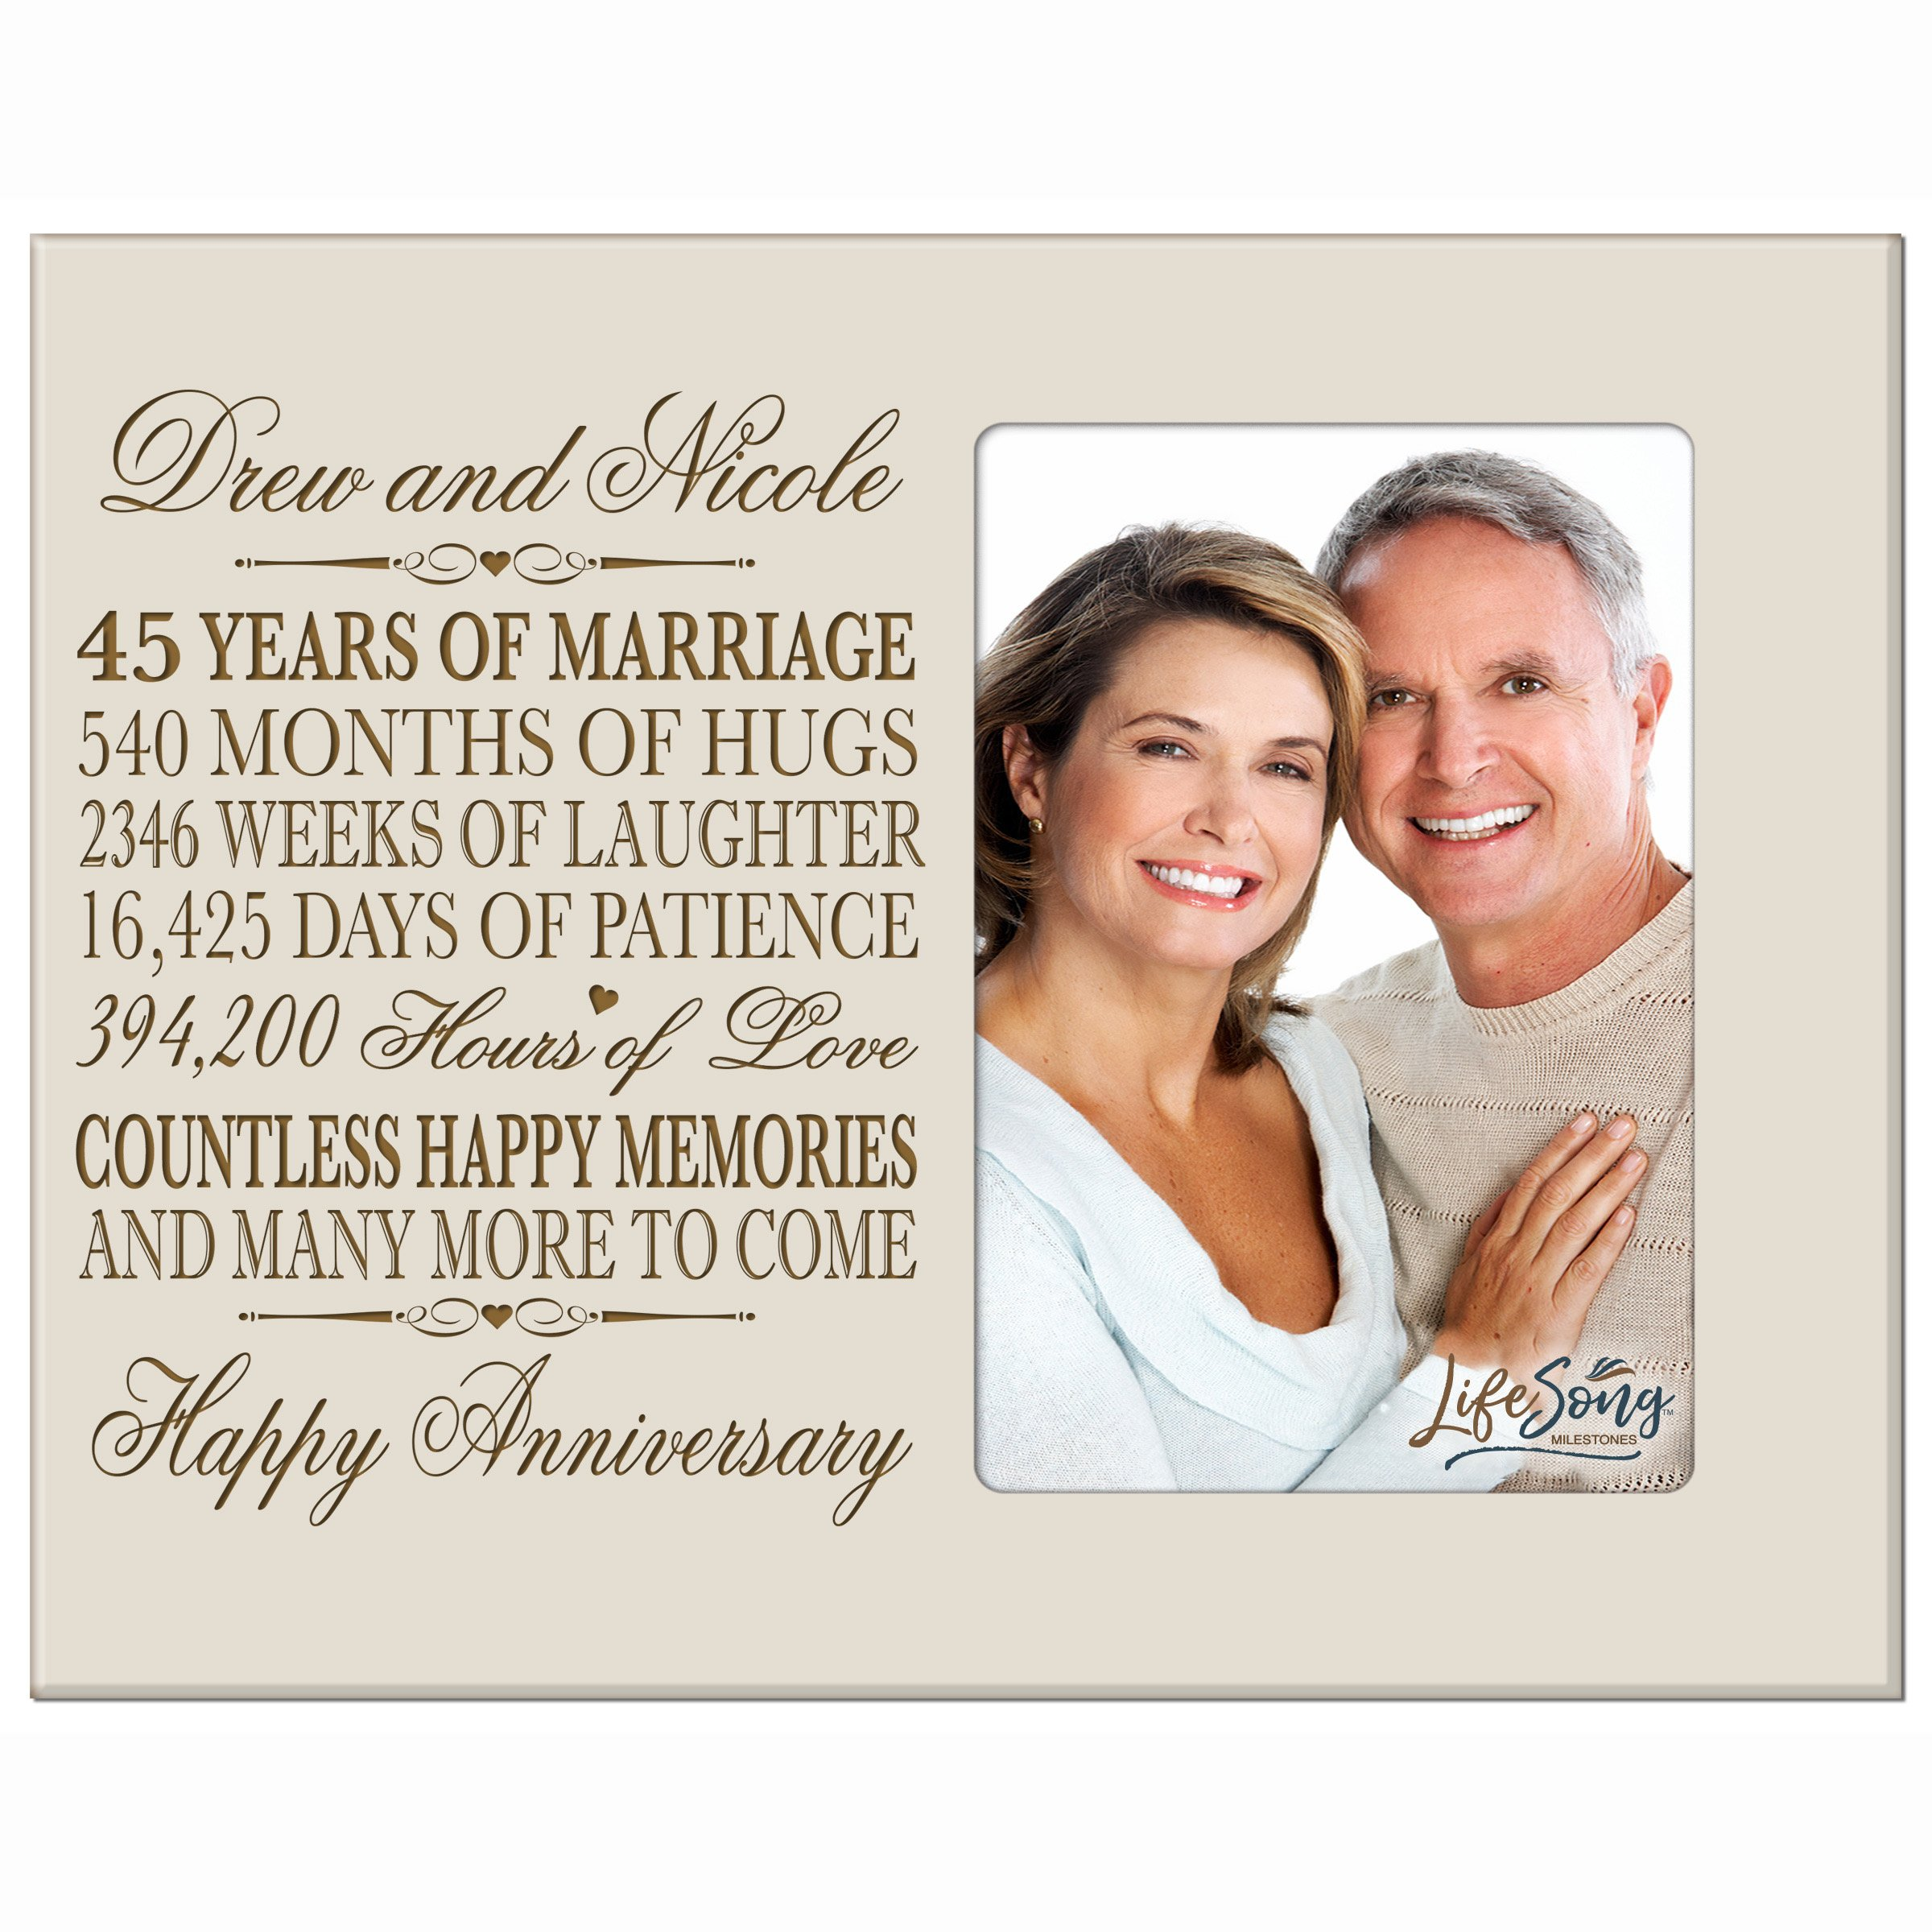 LifeSong Milestones Personalized 45th Year Wedding Anniversary Frame Gift for Couple 45th for Her 45th Wedding for Him Frame Holds 1 4x6 Photo 8'' H X 10'' W (Ivory)